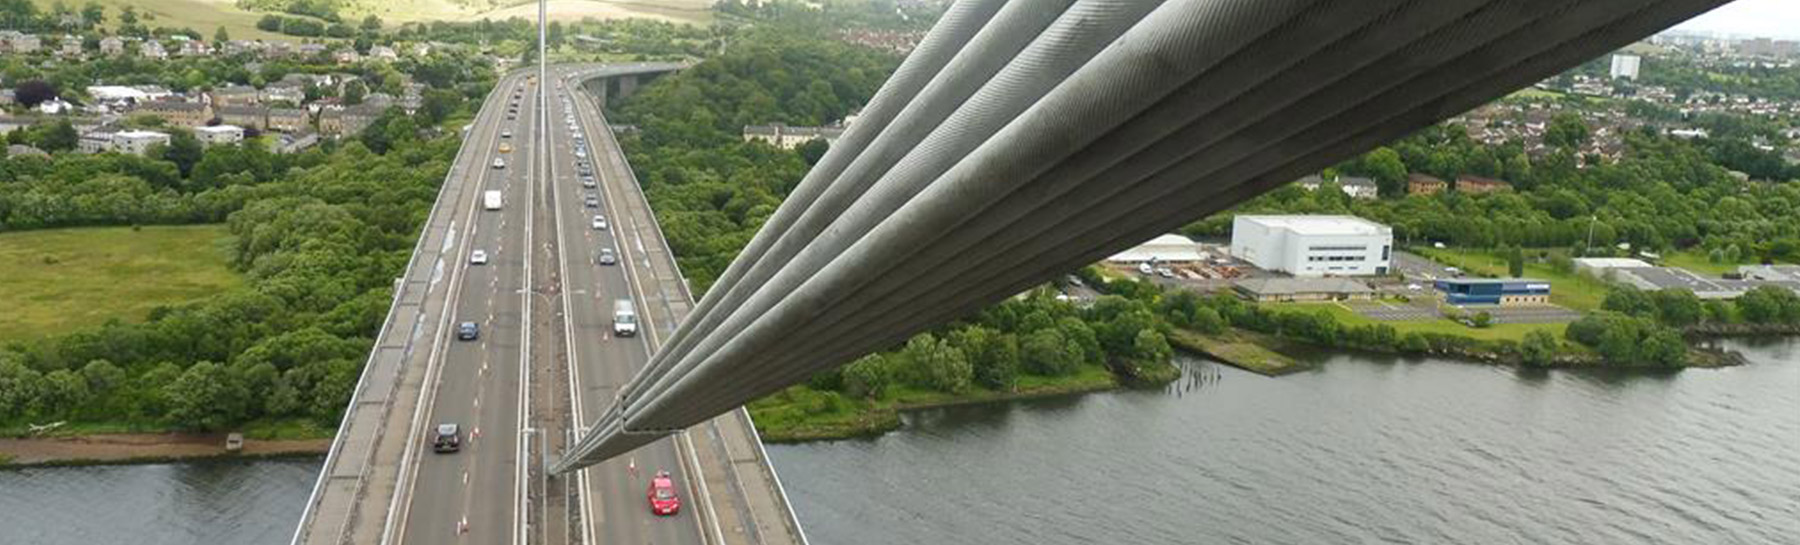 aerial view from top of erskine bridge or road bridge below